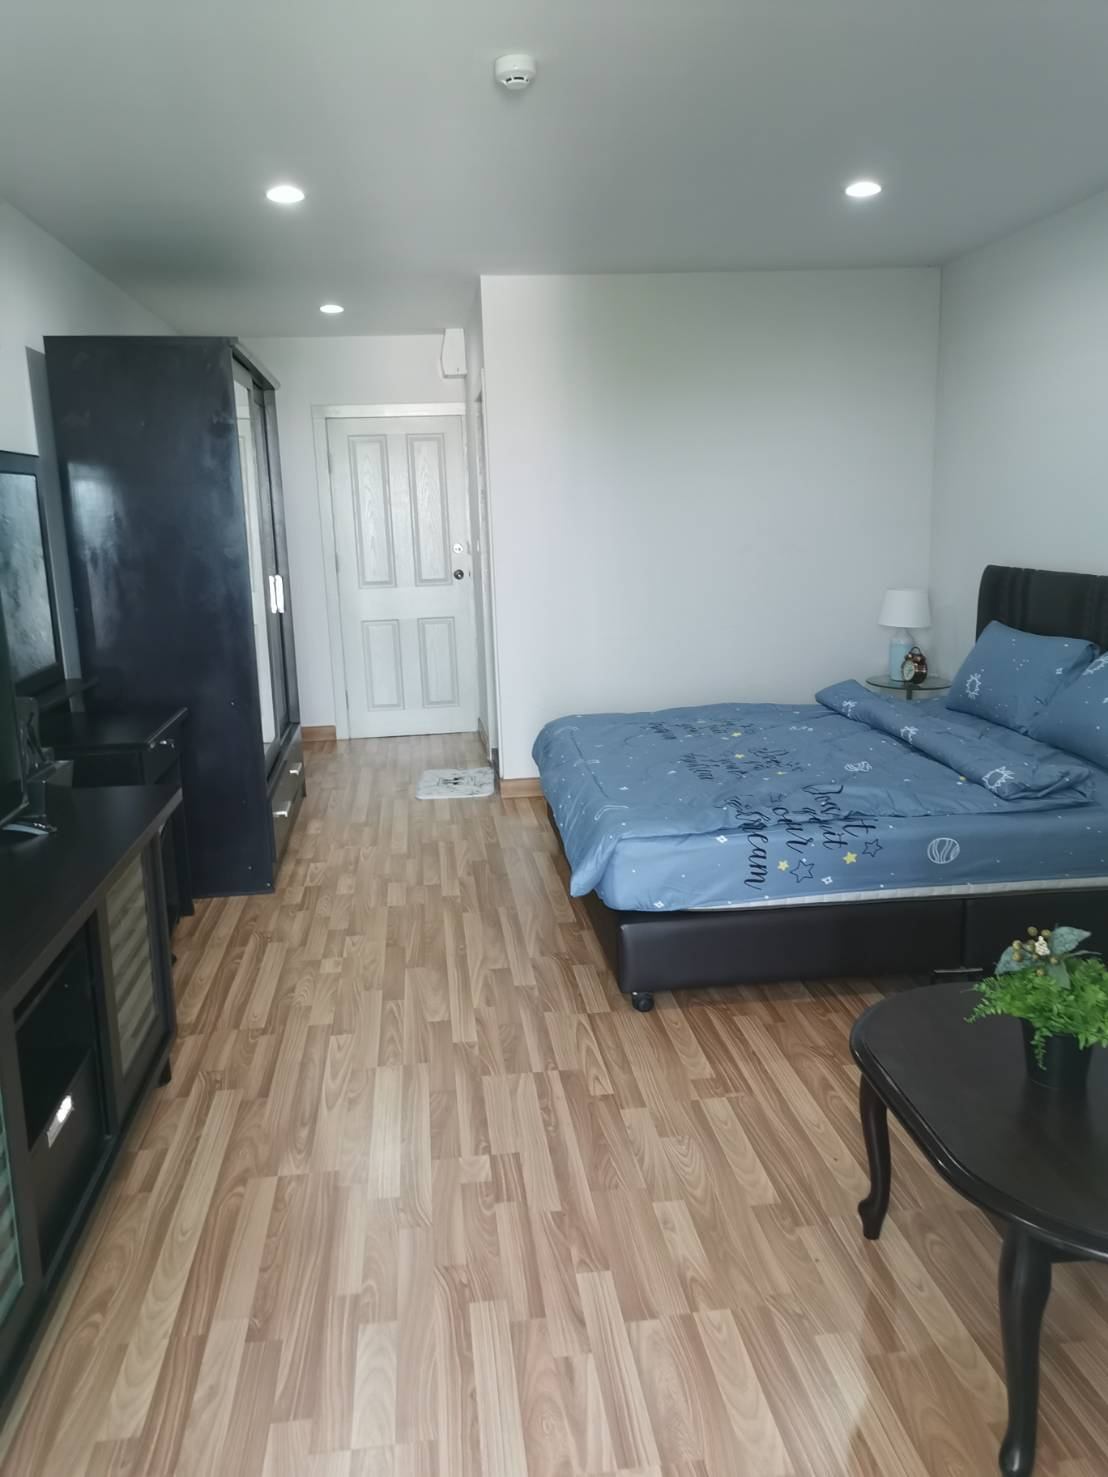 For RentCondoOnnut, Udomsuk : condo for rent regent home 19 near bts bangchak only 200 meters